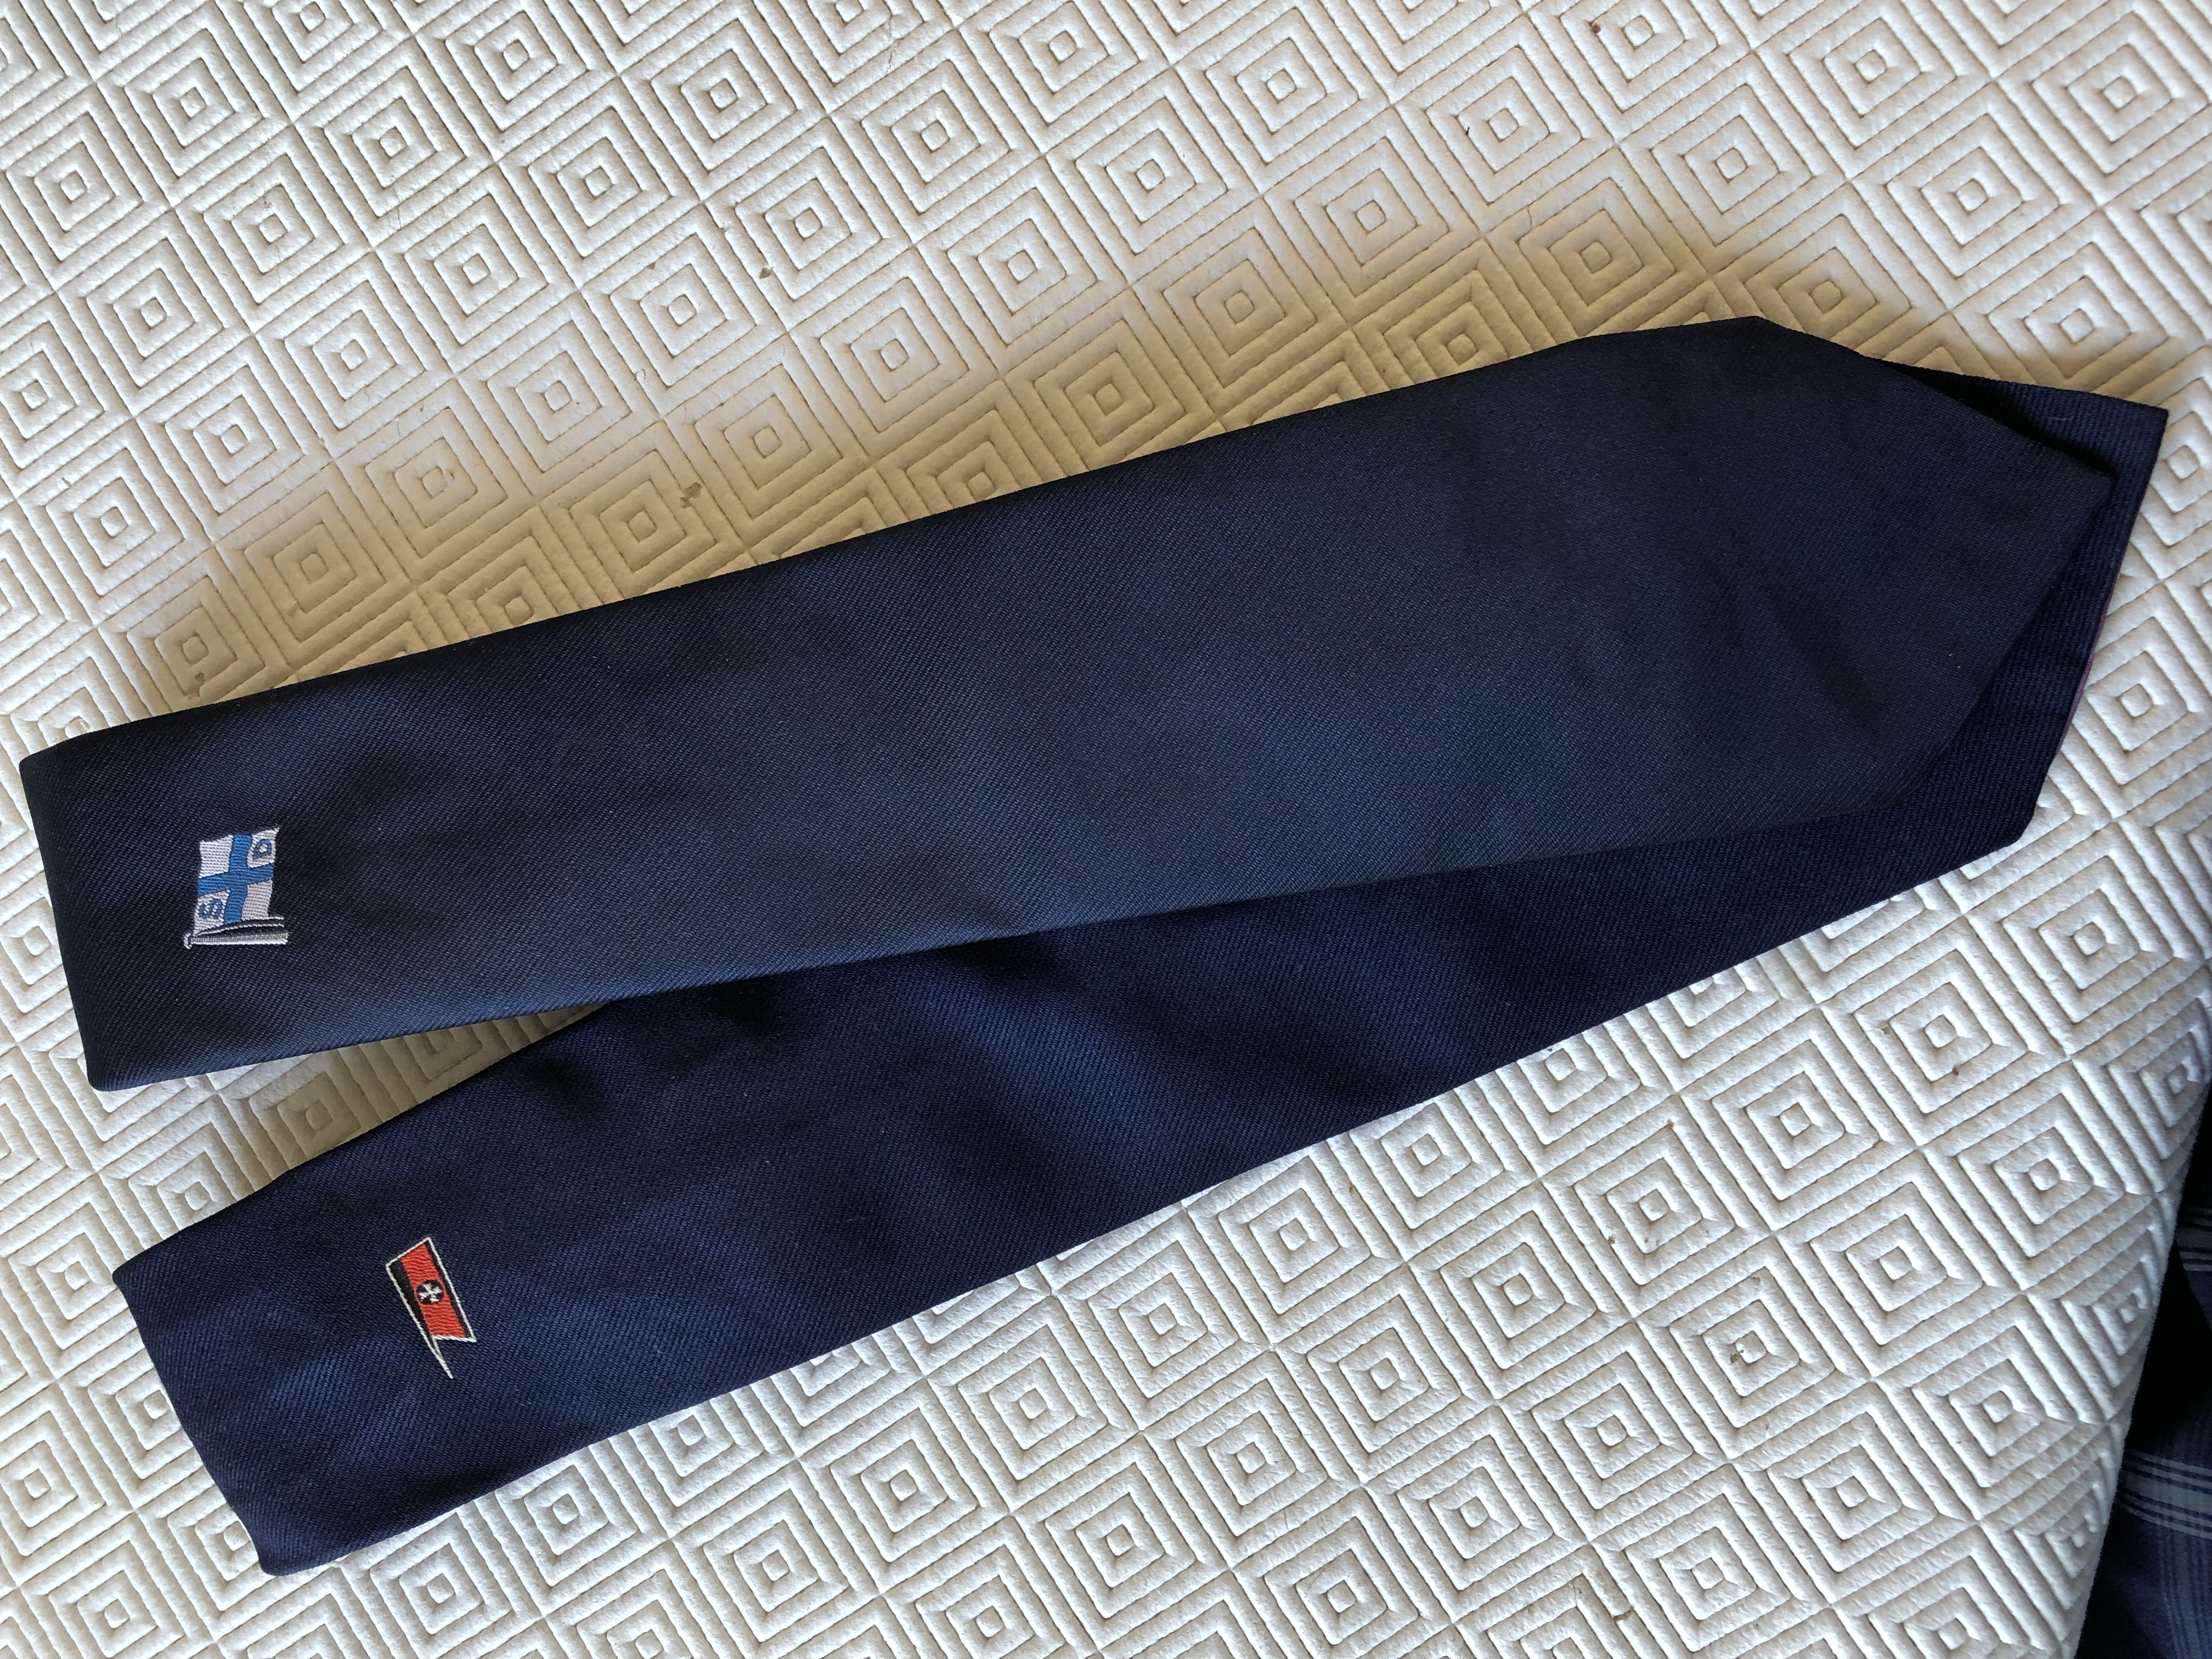 PAIR OF OLD SHIPPING COMPANY TIES FROM SCANDINAVIAN SHIPPING SOURCES